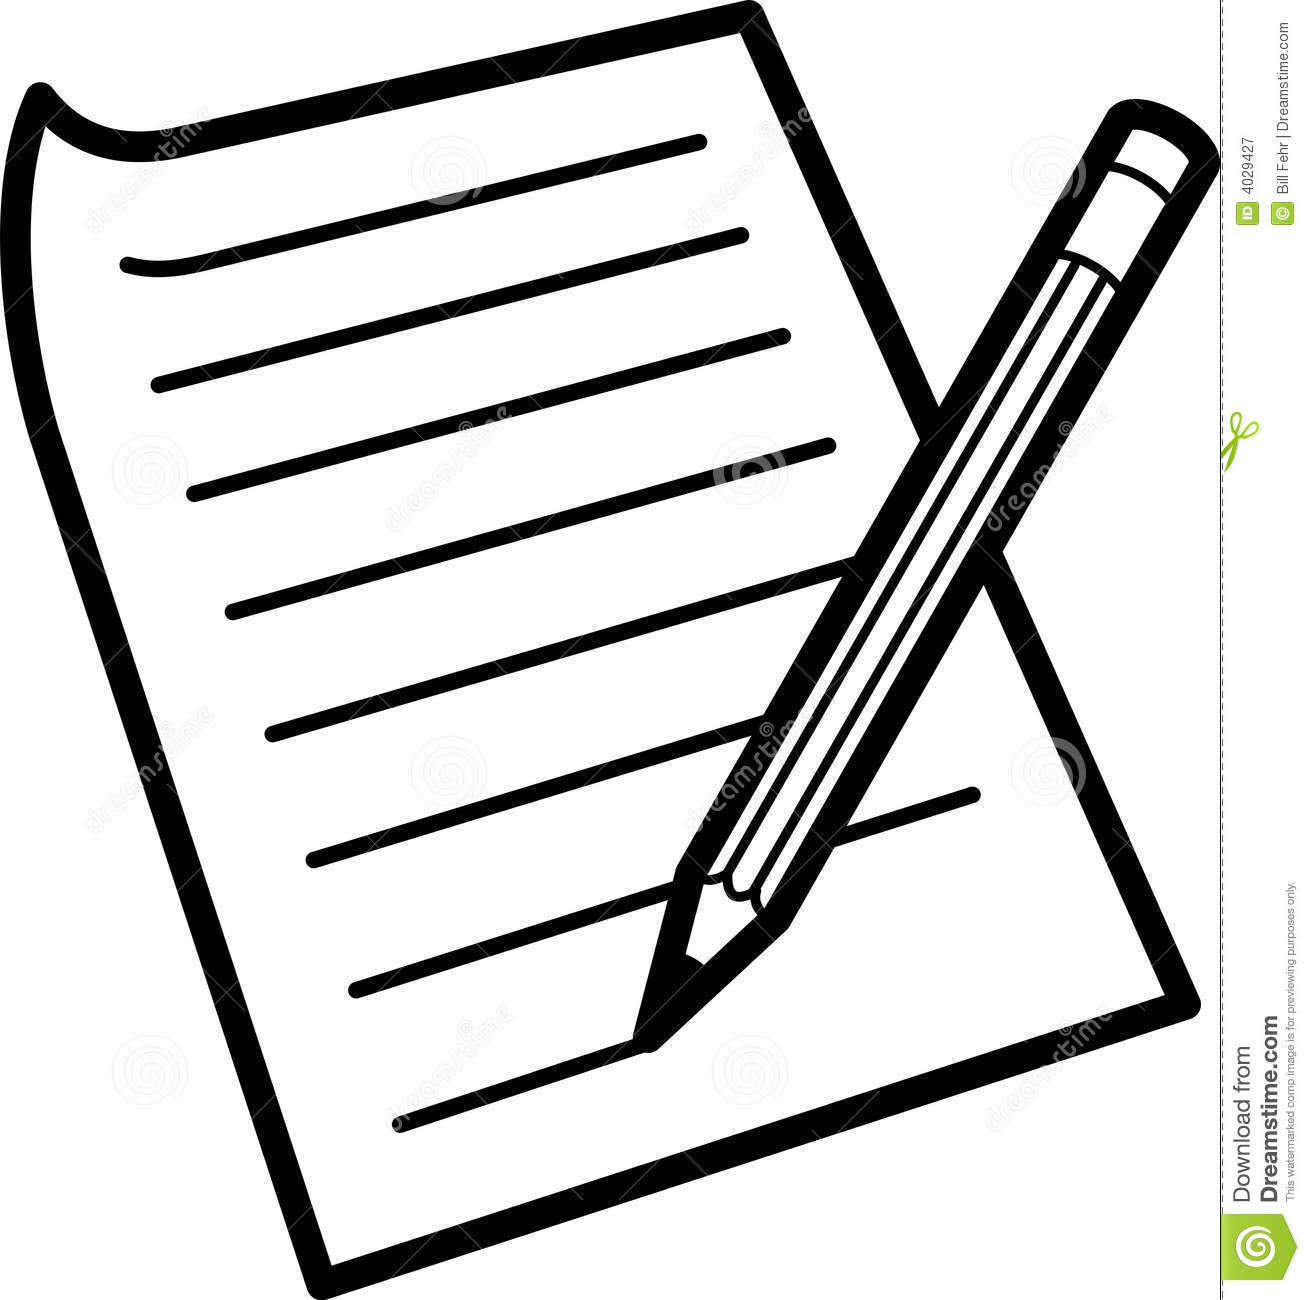 1310x1300 Writing paper clipart